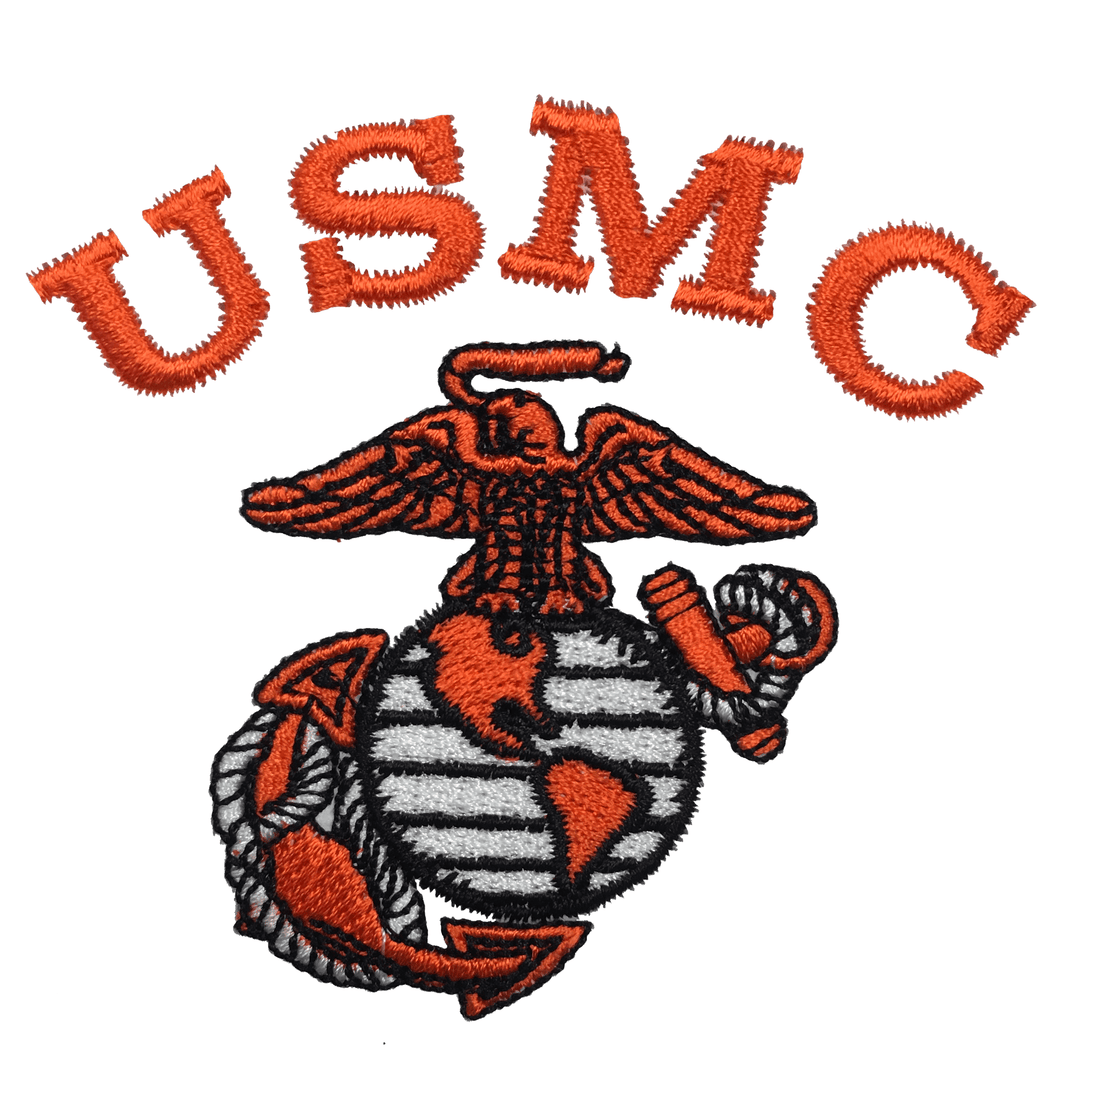 USMC Safety Orange Embroidered Black Hooded Sweatshirt